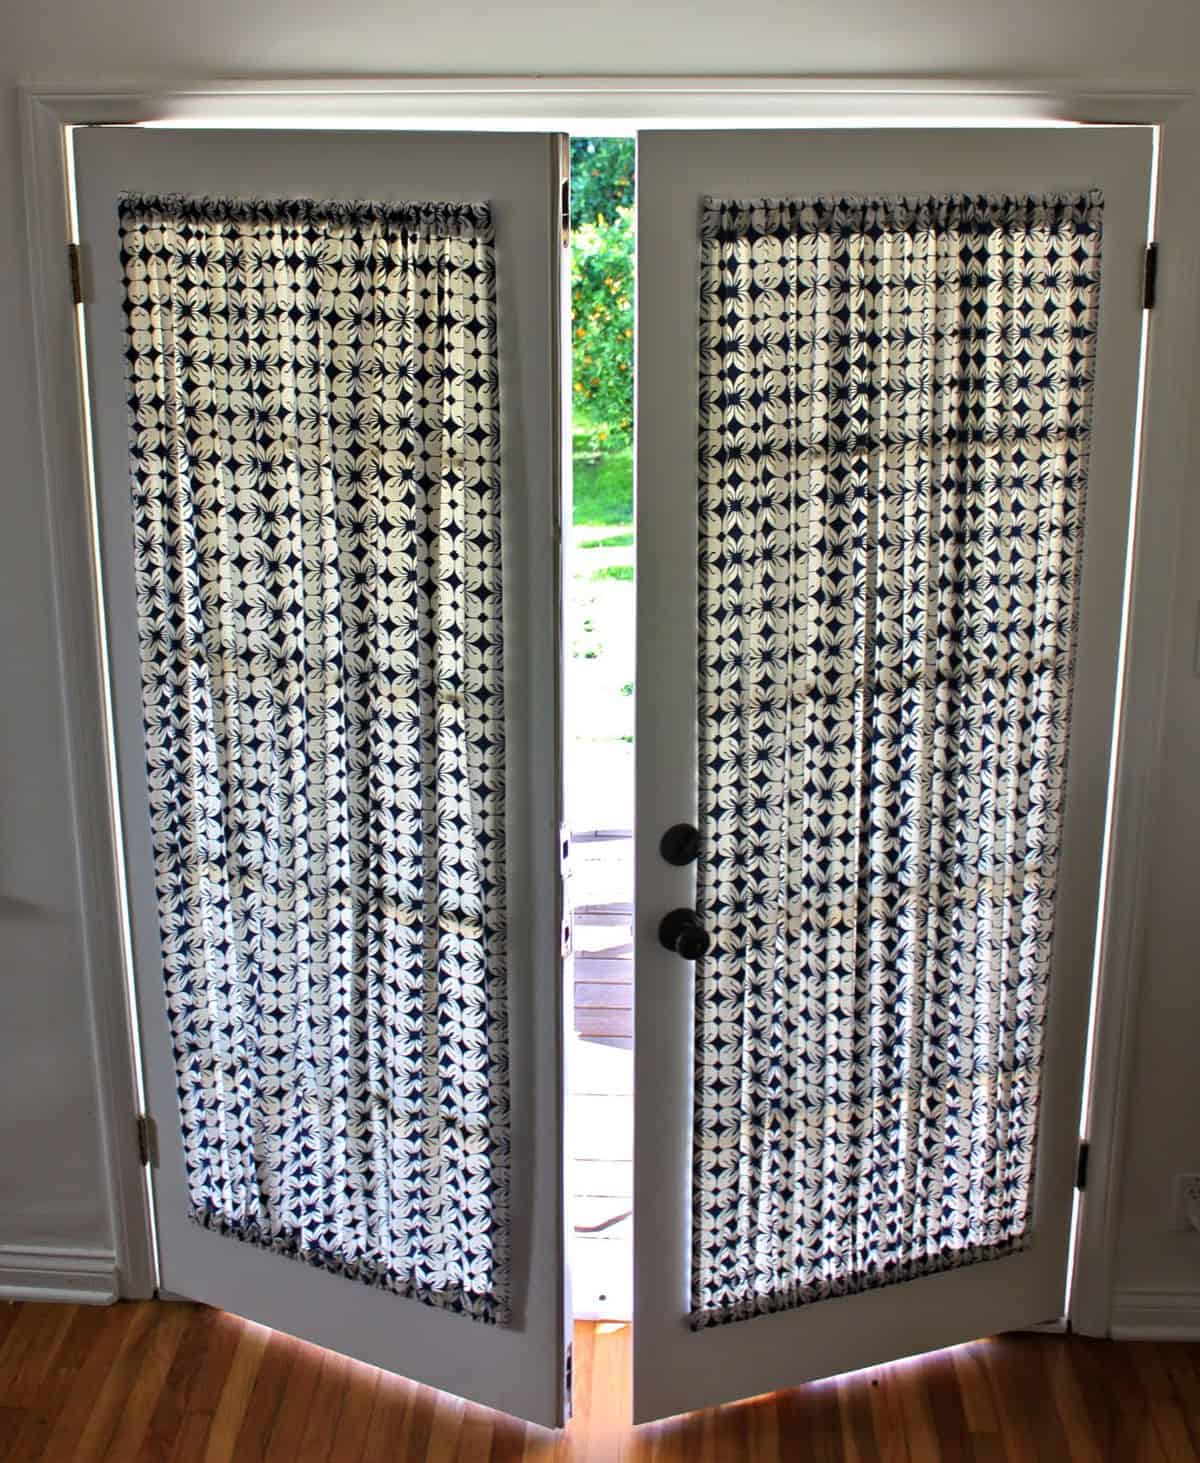 How to make rod pocket curtains - Diy French Door Curtain Panel Tutorial